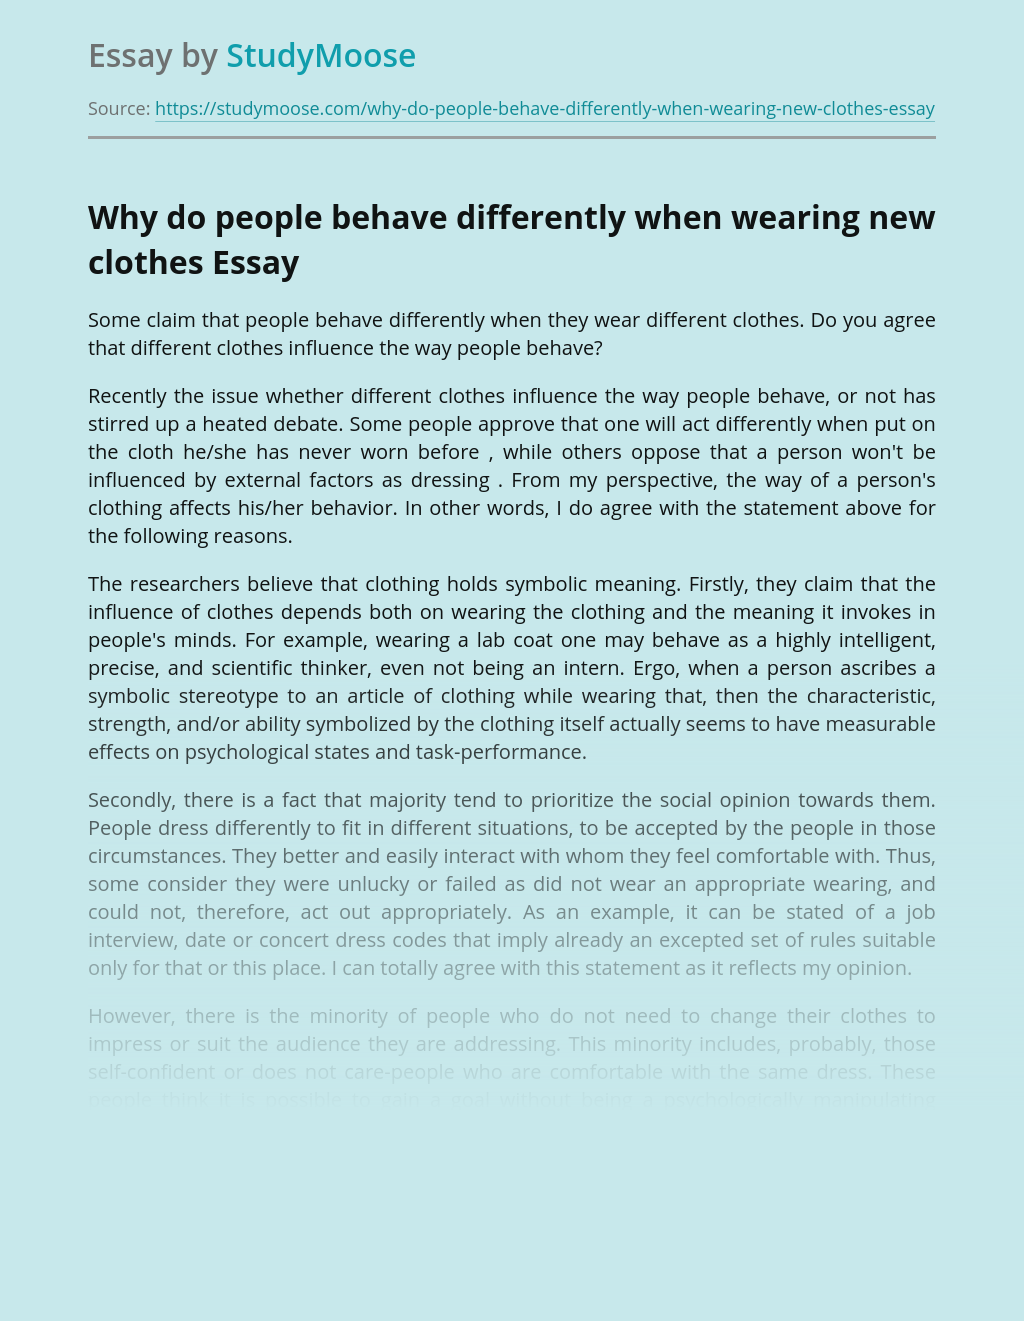 Why do people behave differently when wearing new clothes